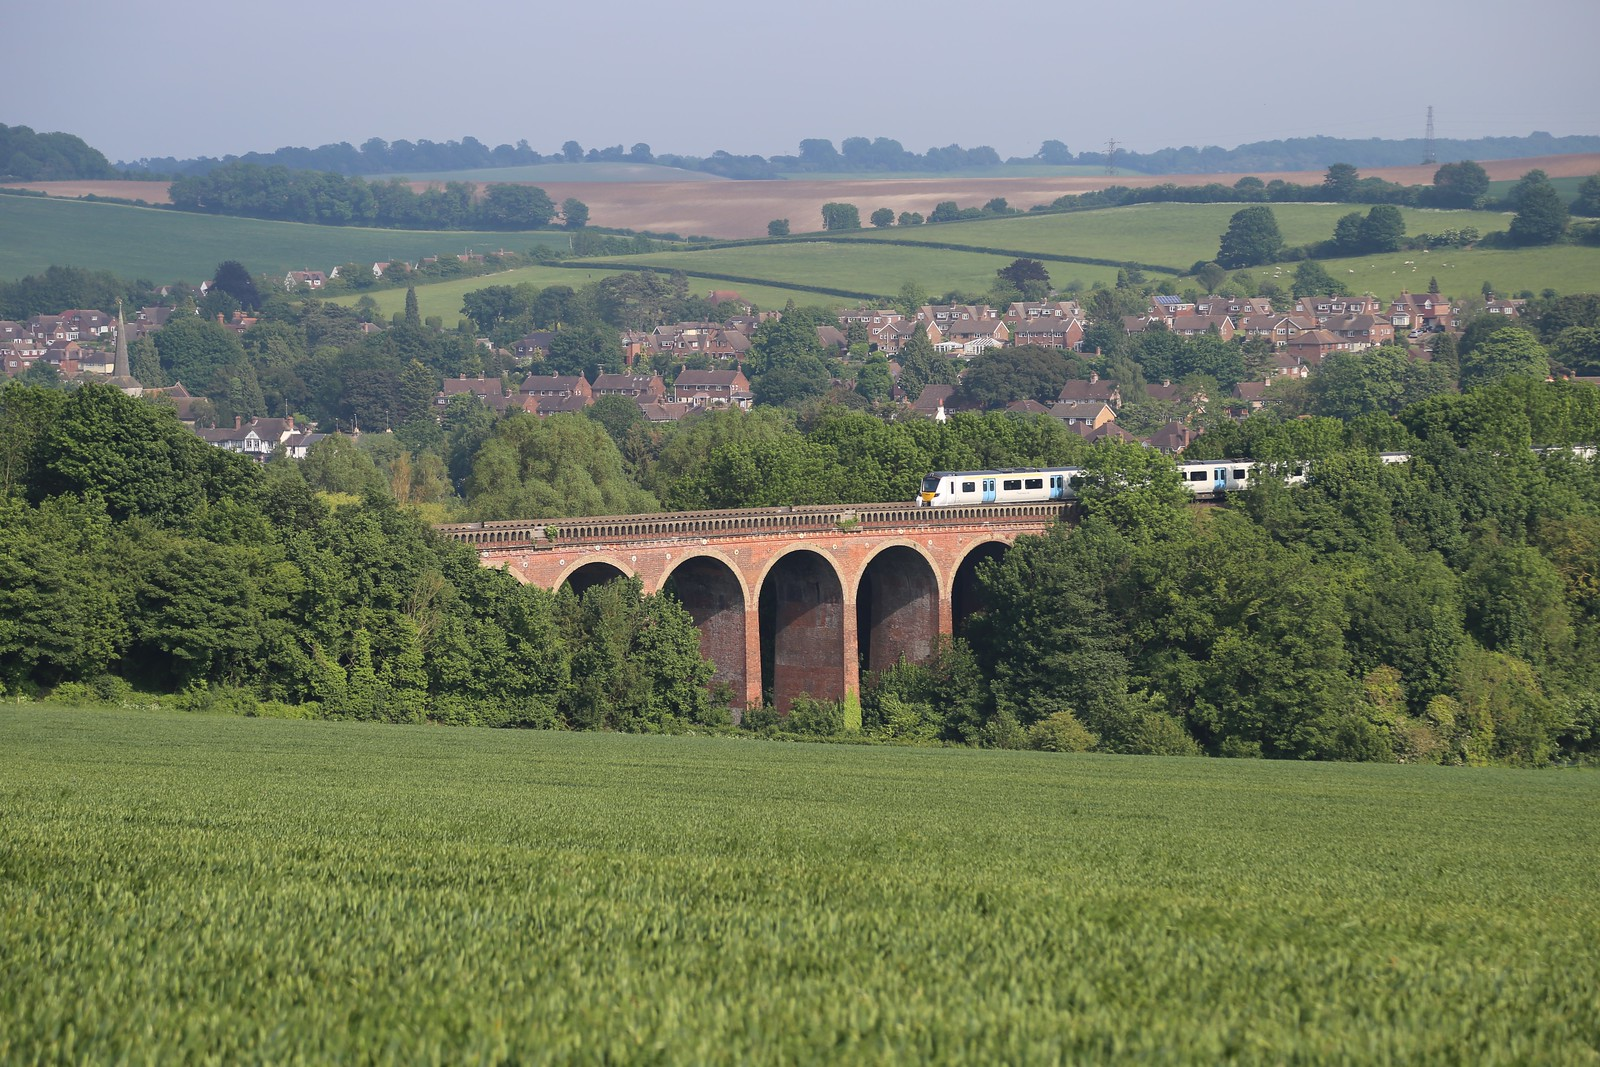 Viaduct - Otford to Eynsford Walk